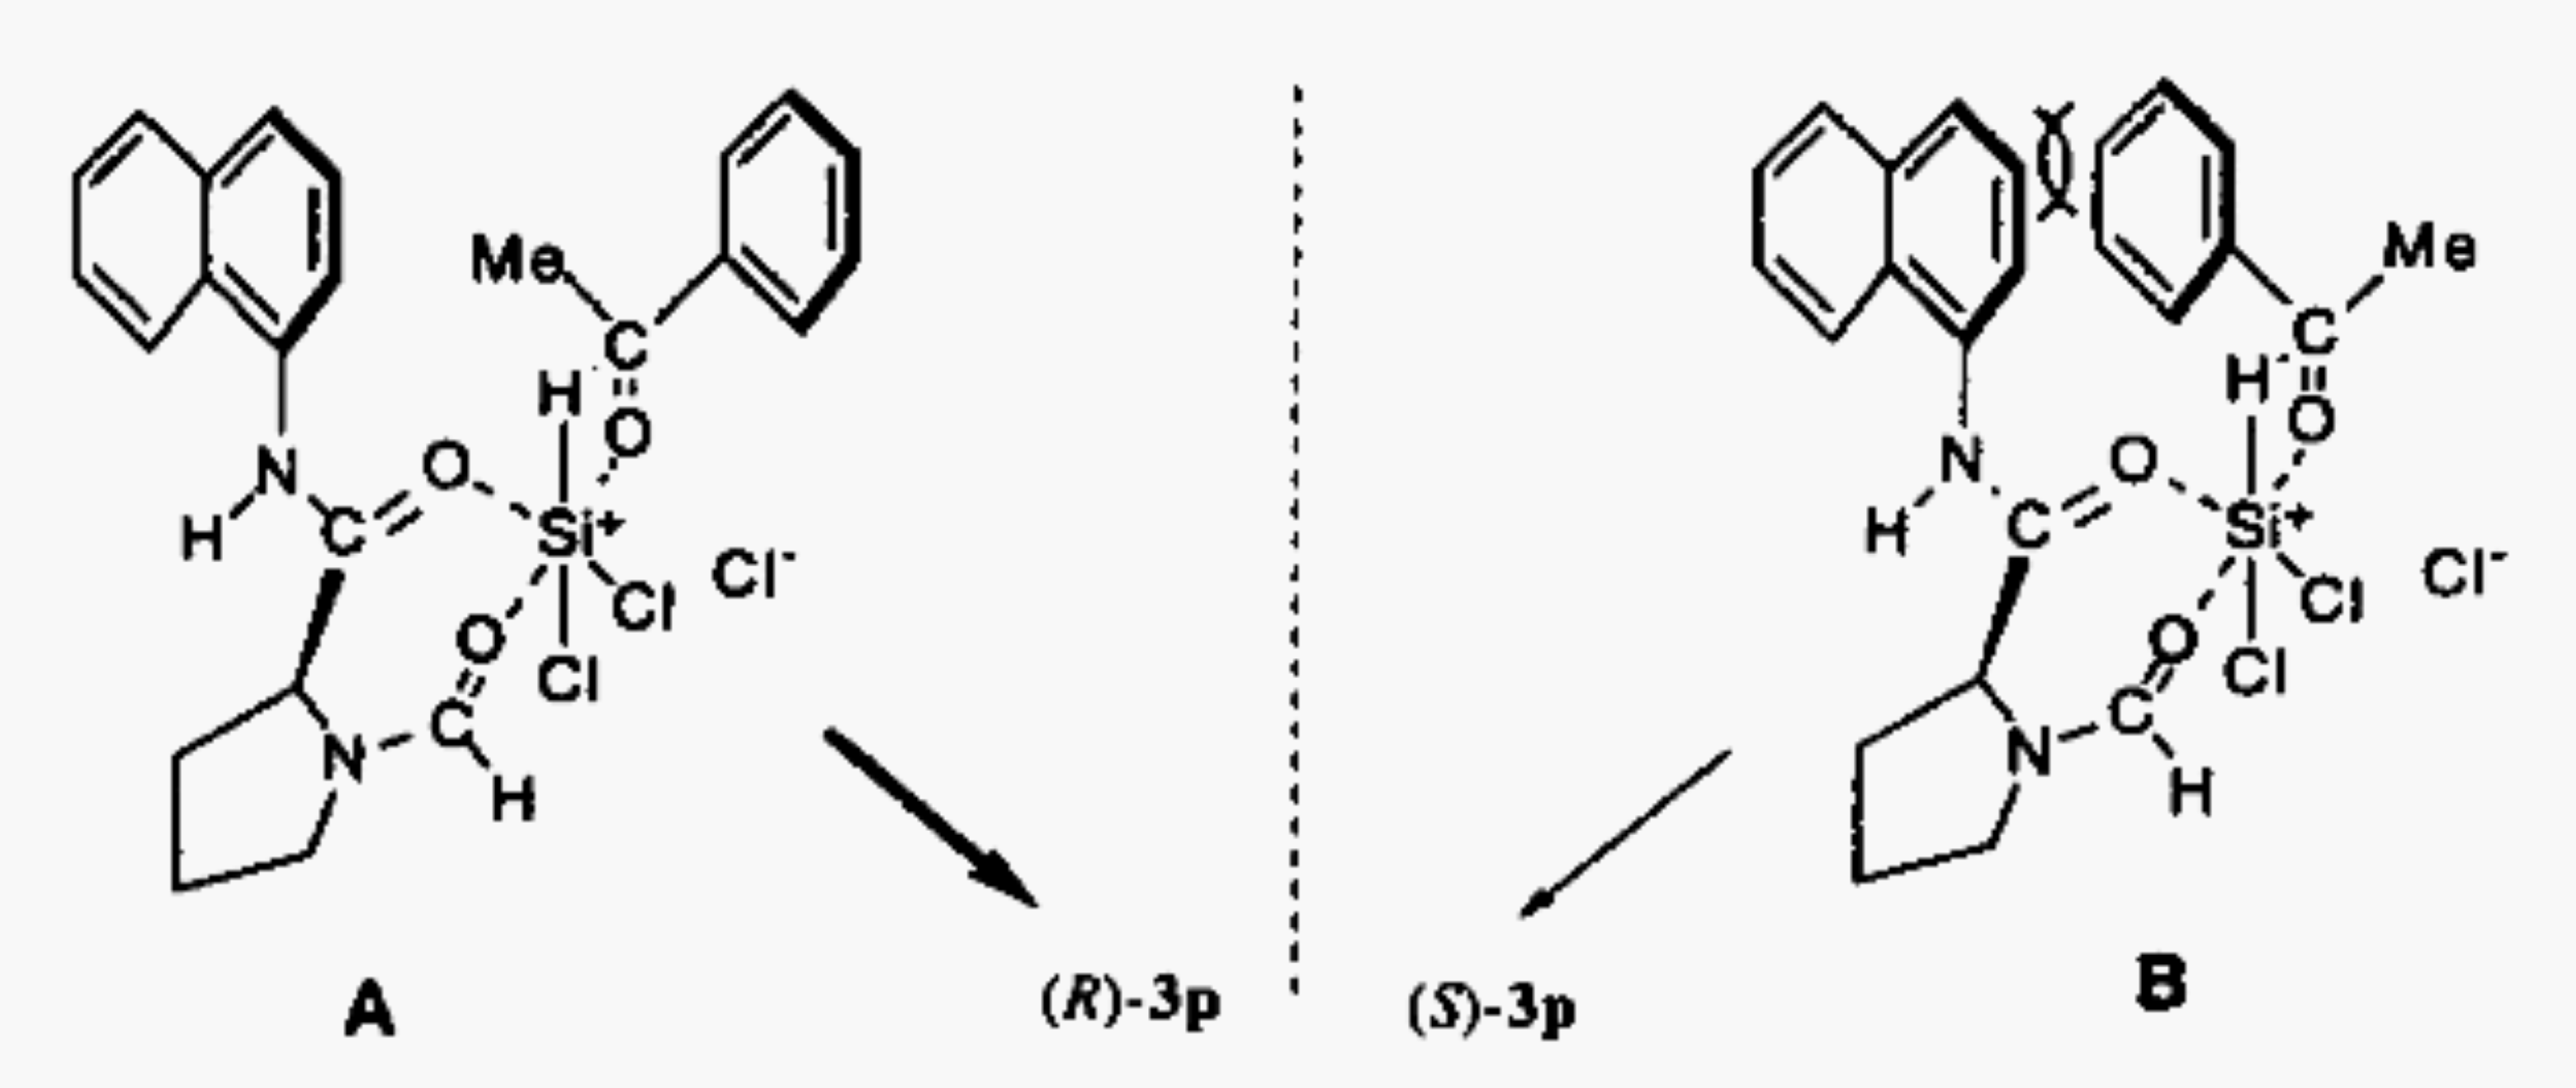 ewis Base Catalysis: n σ* Interactions eduction of carbonyls and imines osomi (1988) Si() 3 (1.5 equiv.) cat. (0.4 mol%) TF, T 89% 52% ee Kohra, S; ayashida,.; Tominaga, Y.; osomi, A. Tetrahedron ett.